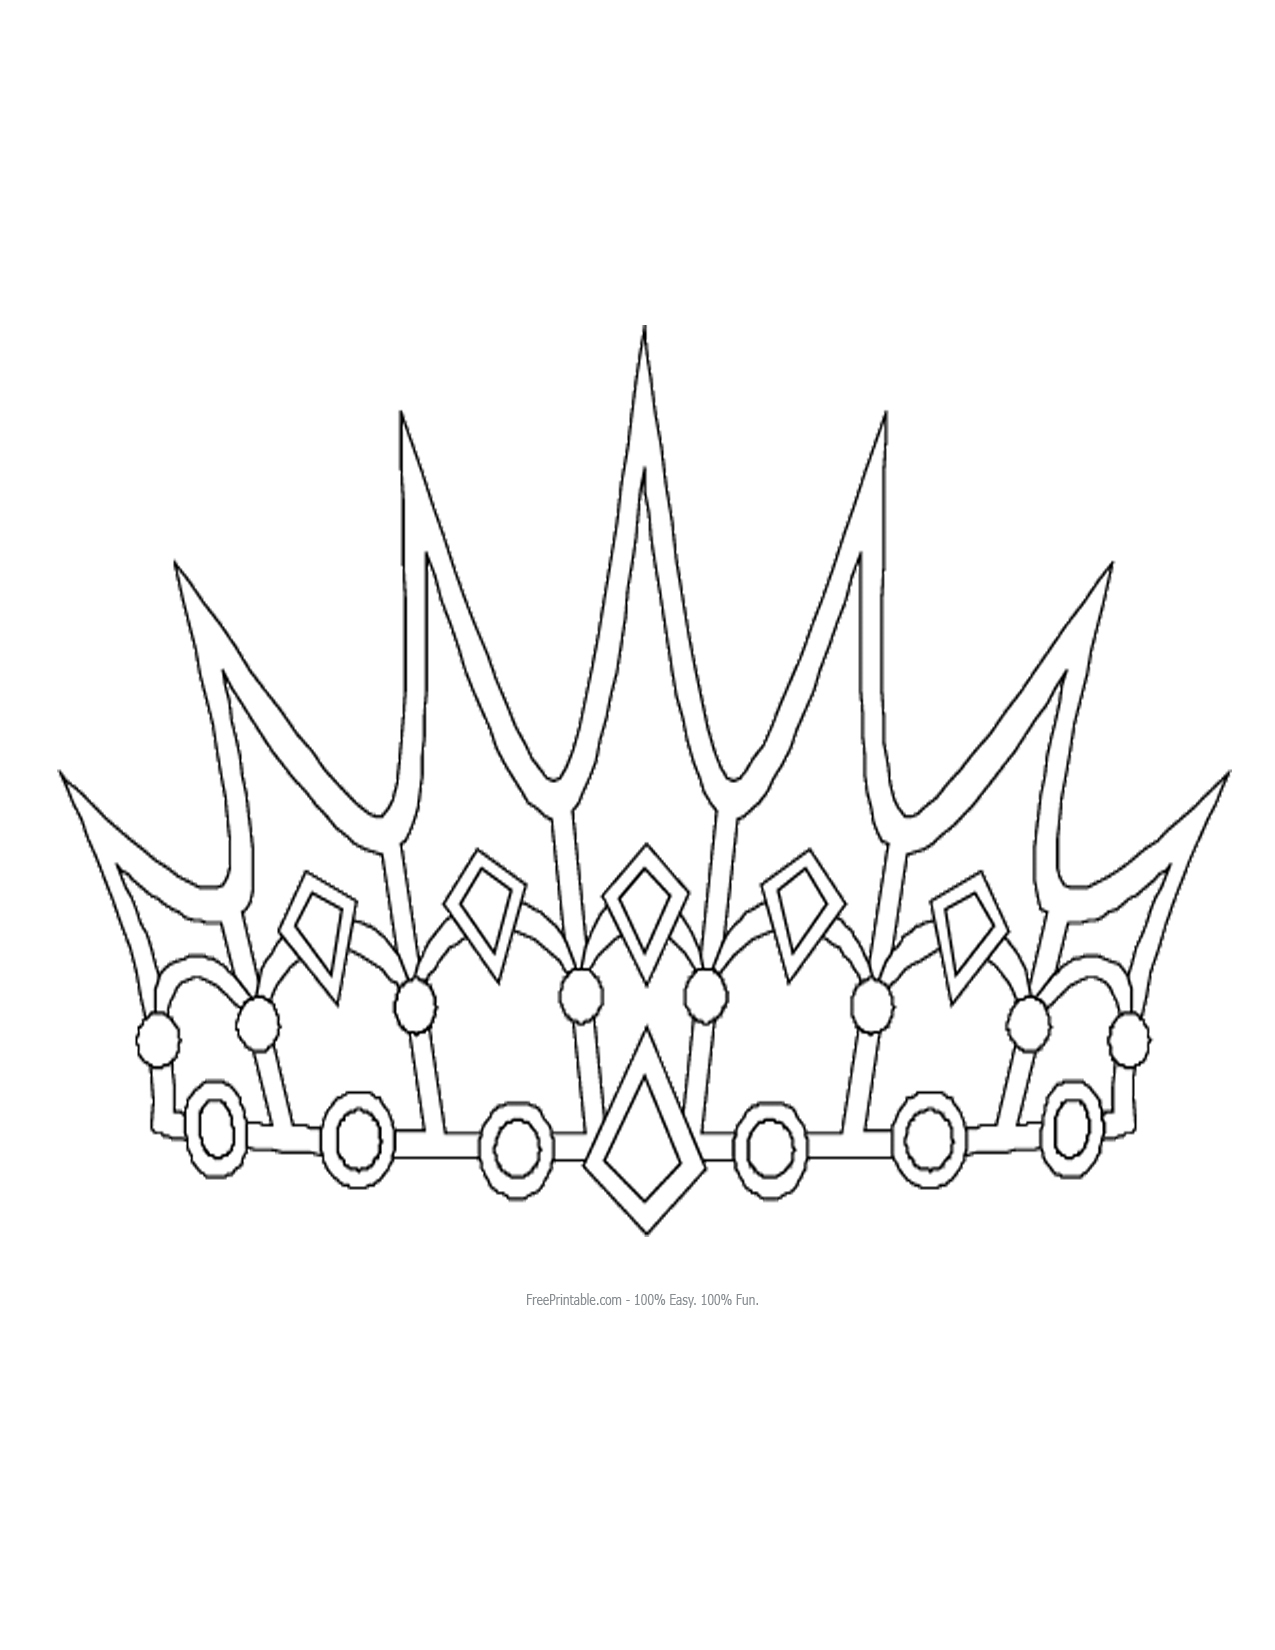 free printable tiara template - princess crown pattern pelautscom tattoo tattooskid